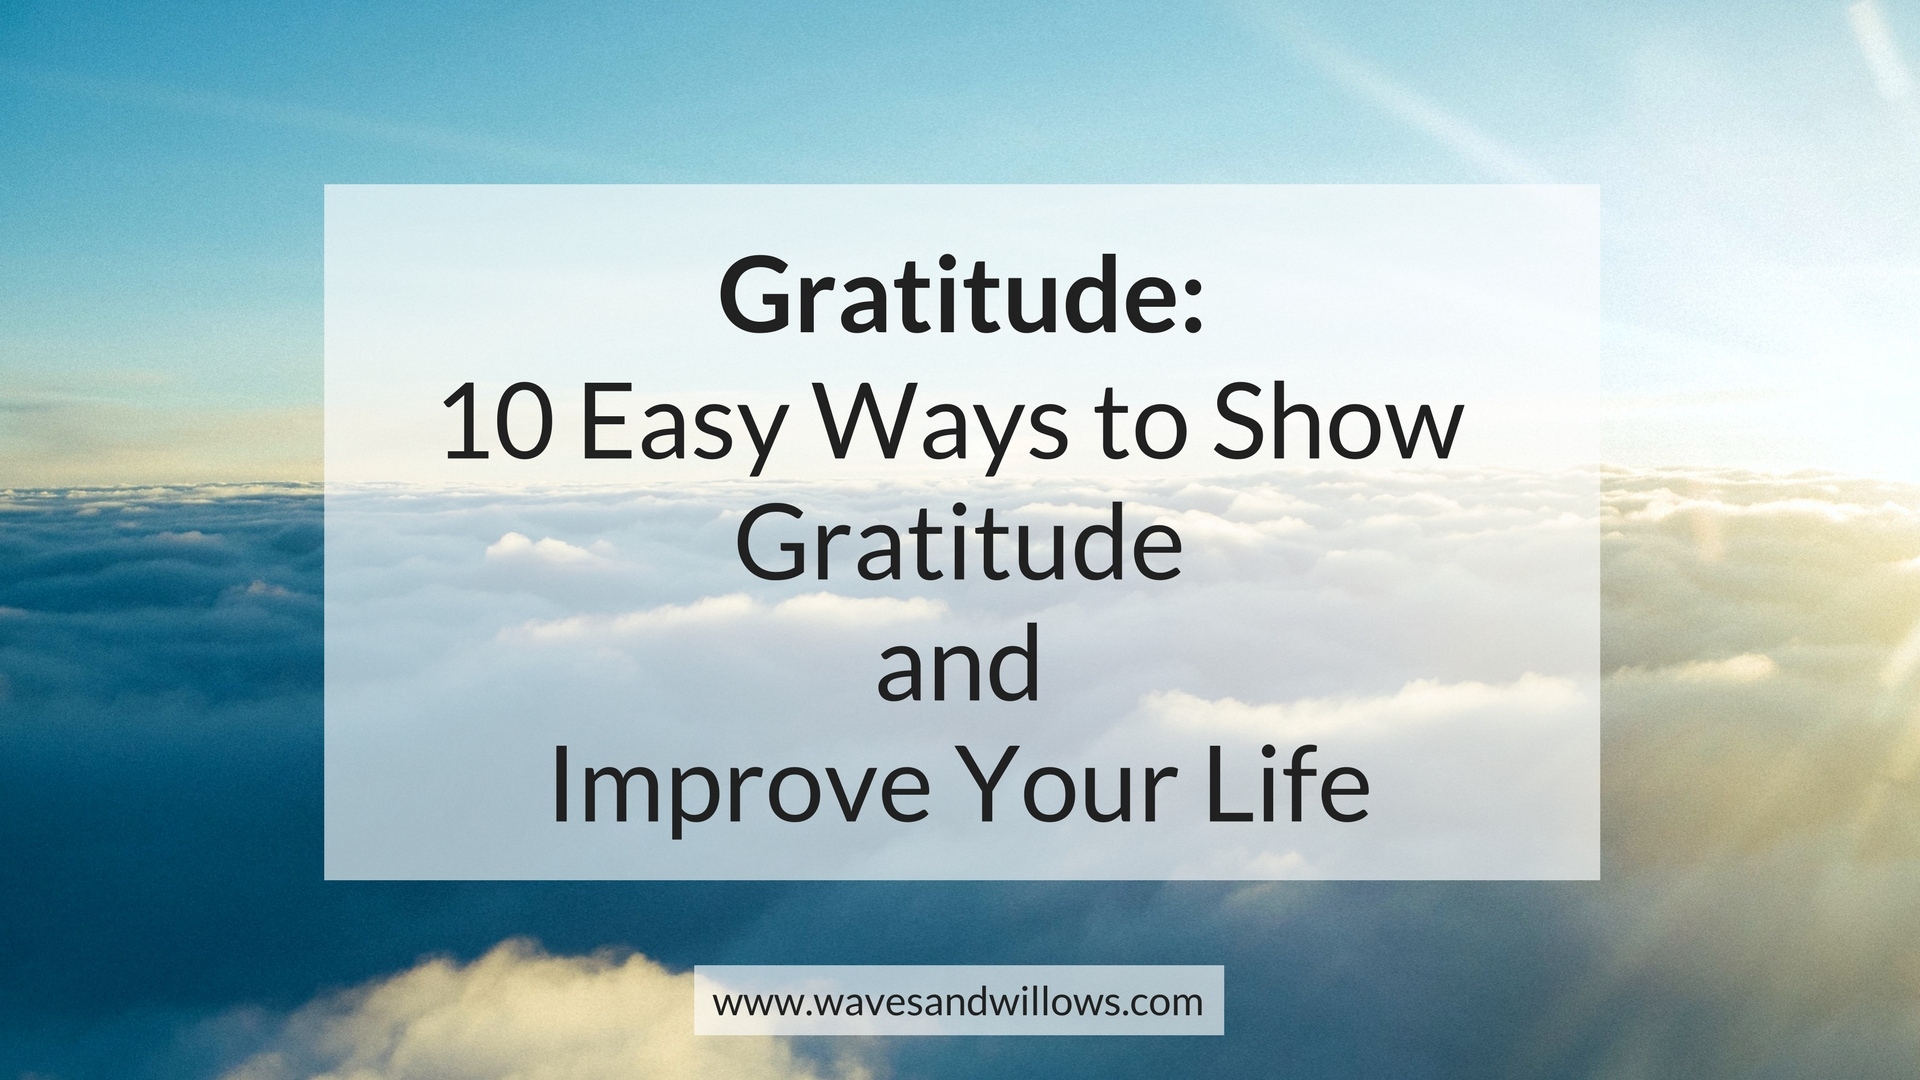 Gratitude: 10 Easy Ways to Show Gratitude and Improve Your Life - www.wavesandwillows.com